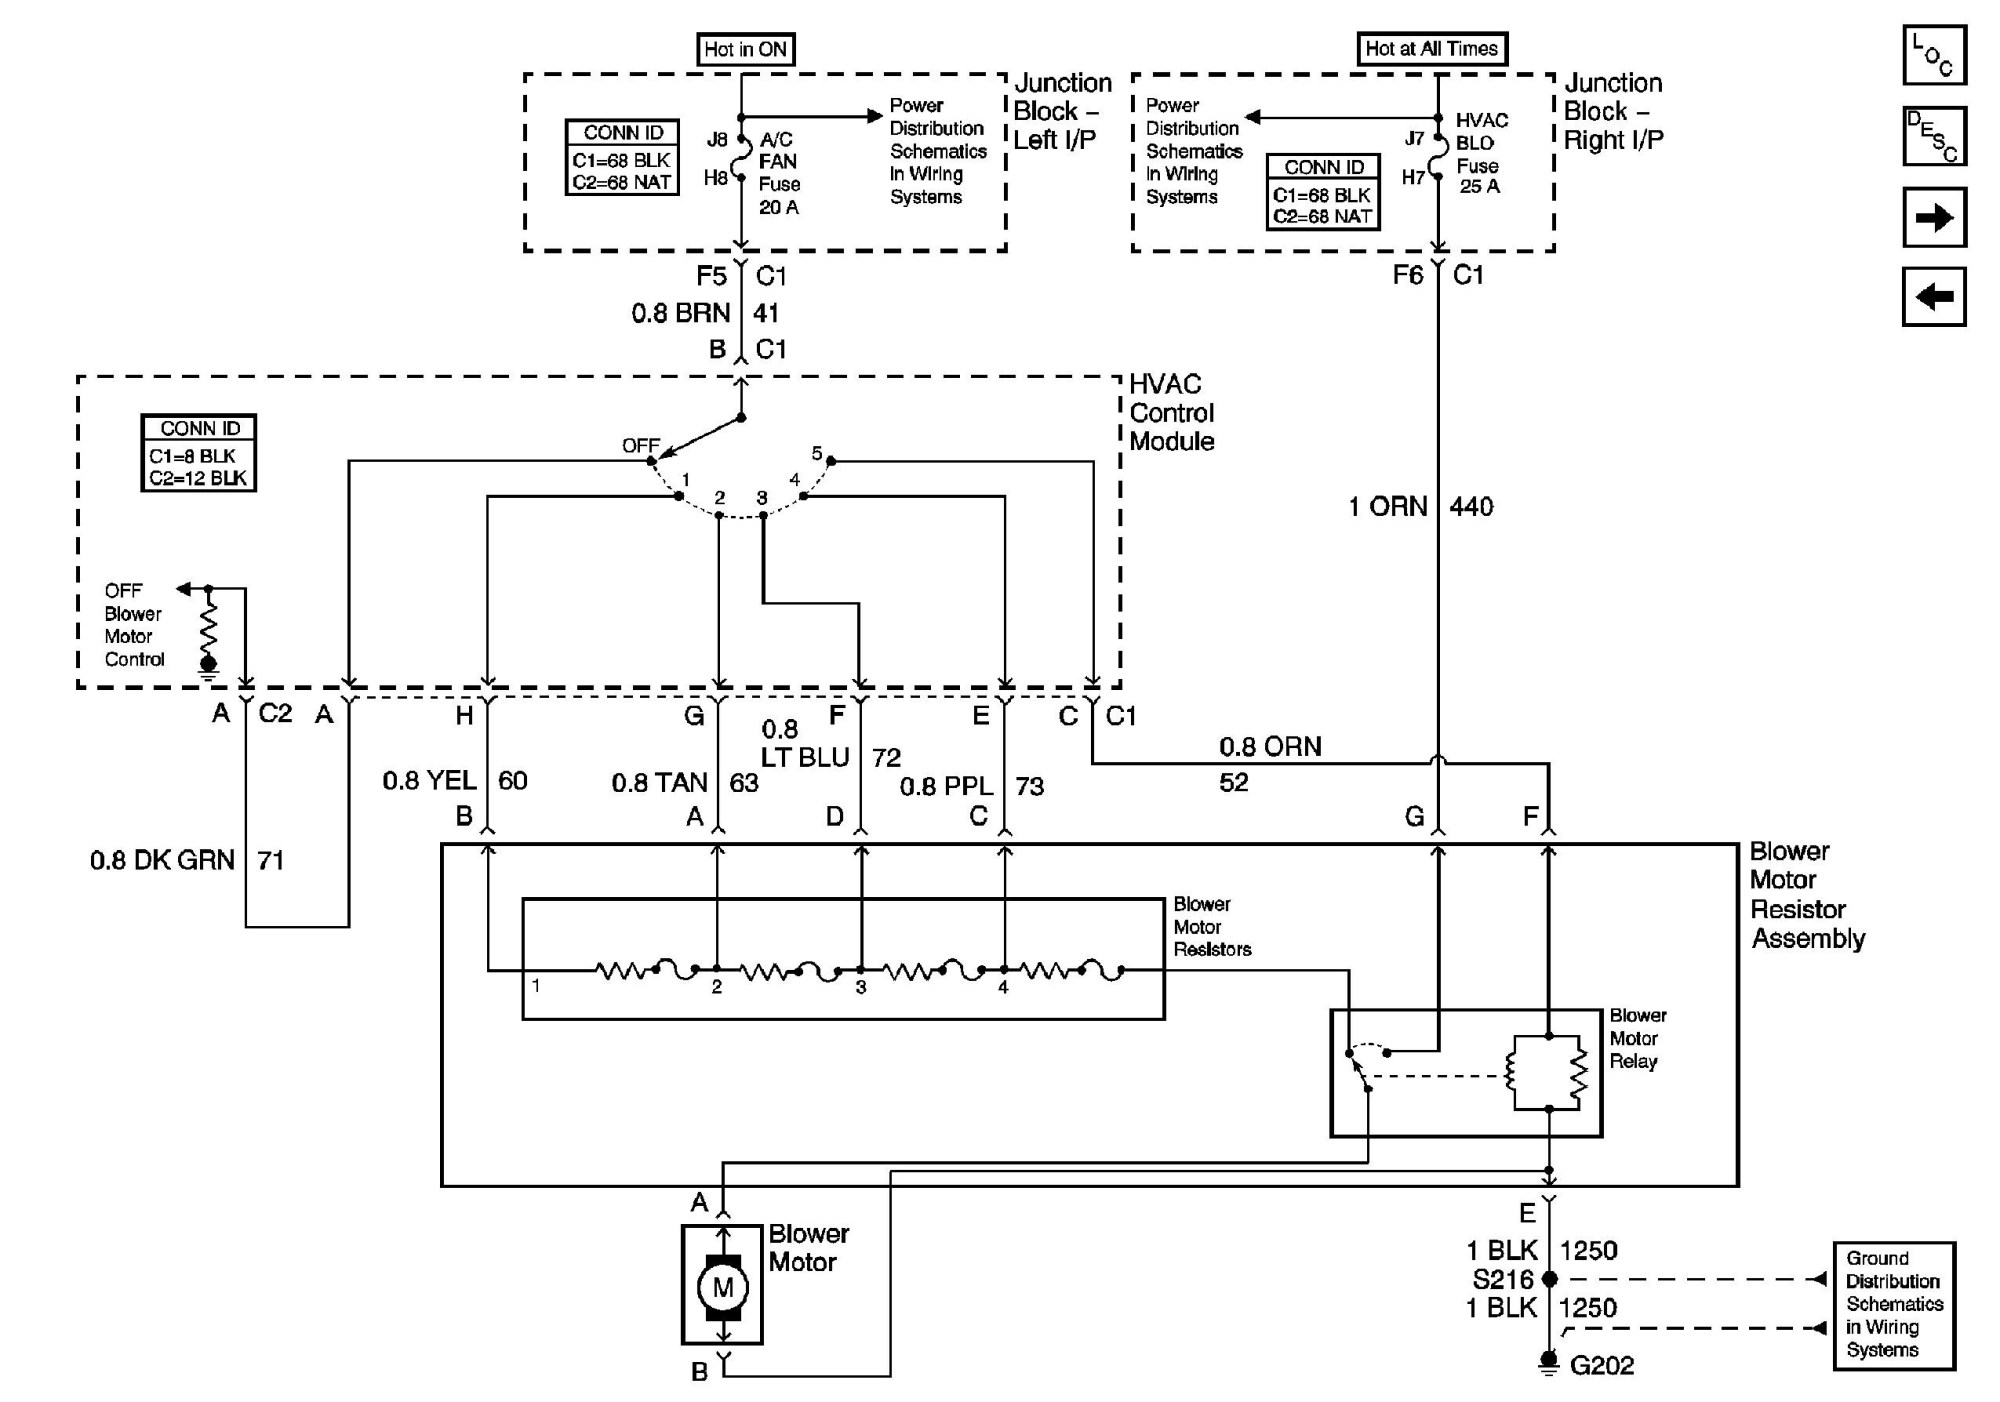 hight resolution of 1994 s10 blower motor wiring diagram wiring diagram todays wiring diagram for 1998 s10 fuel pump 1998 s10 wiring diagram blower